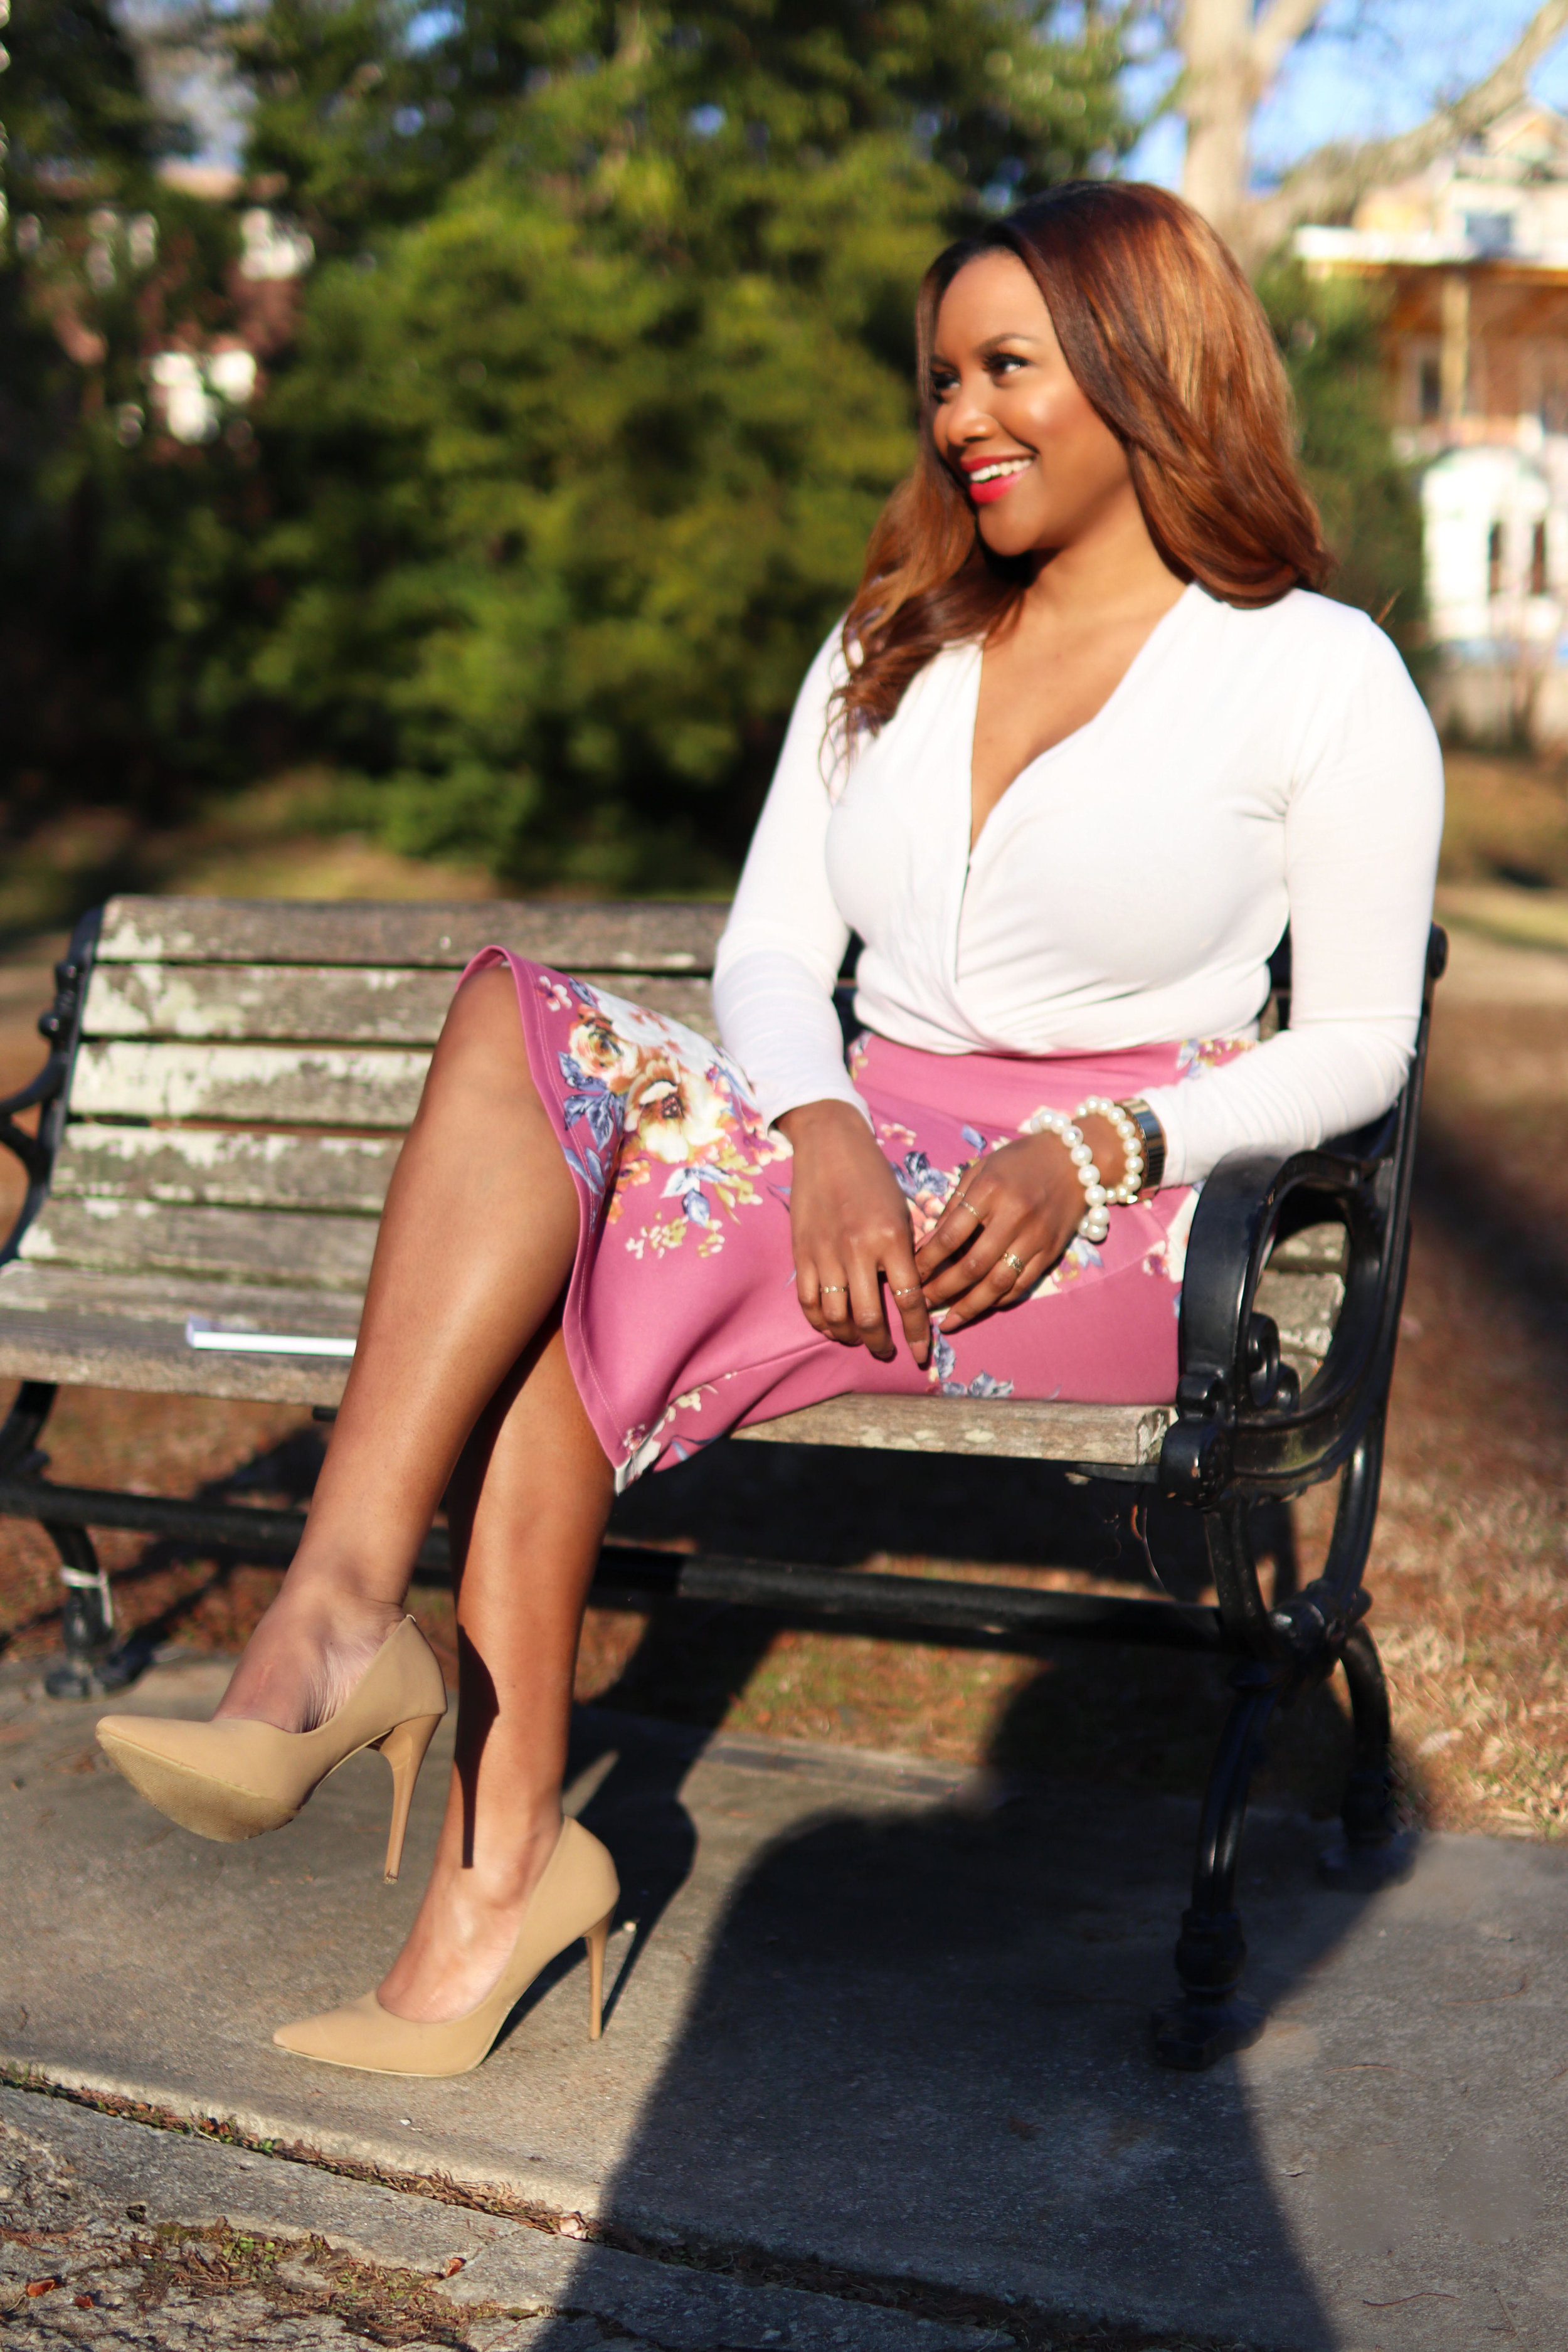 Coaching Services - As seen on The Steve Harvey Show, featured on Blavity, Hot 107.9 and numerous other platforms I am a dedicated and qualified coaching professional! Dedicated to serving others as they journey to their divine destiny, my passion is to see YOU live your best life. Let's get to work! Pick a coaching plan today.